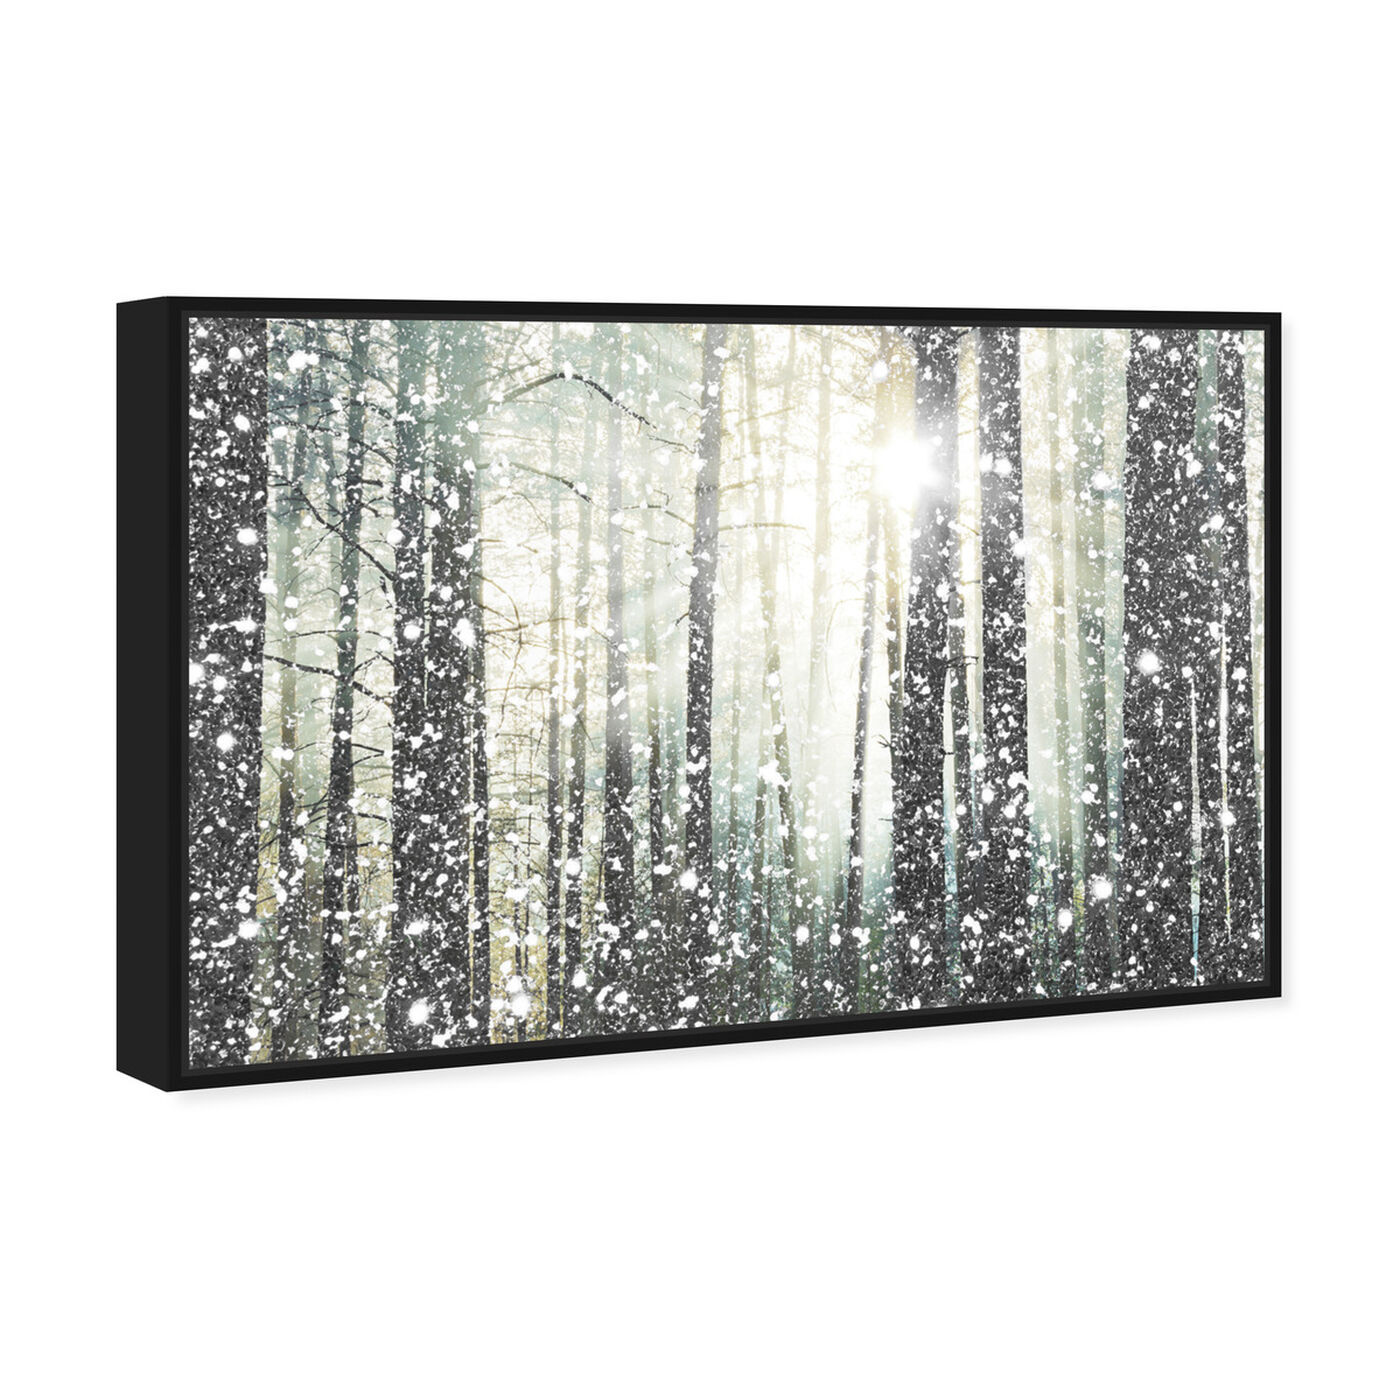 Angled view of Magical Forest SILVER featuring nature and landscape and forest landscapes art.